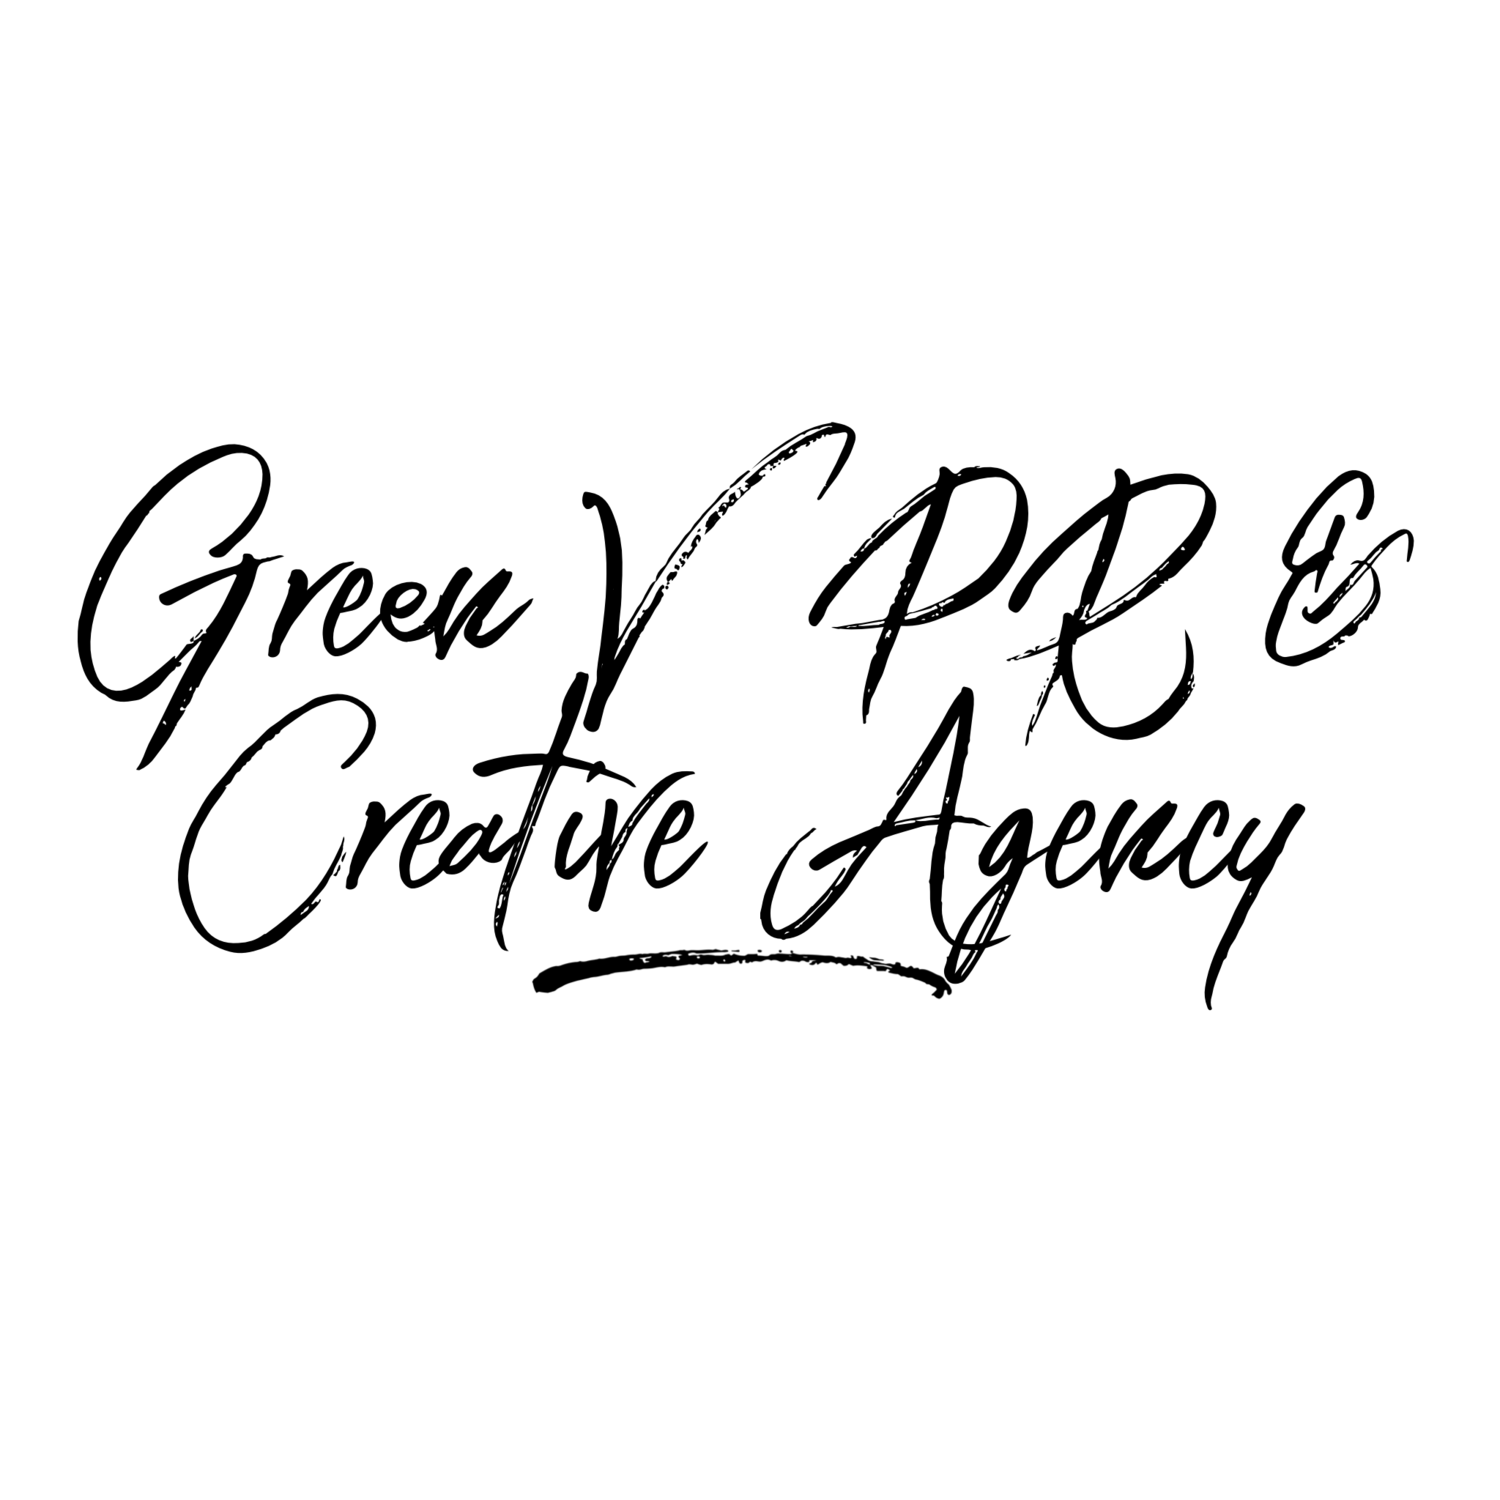 Green V PR & Creative Agency